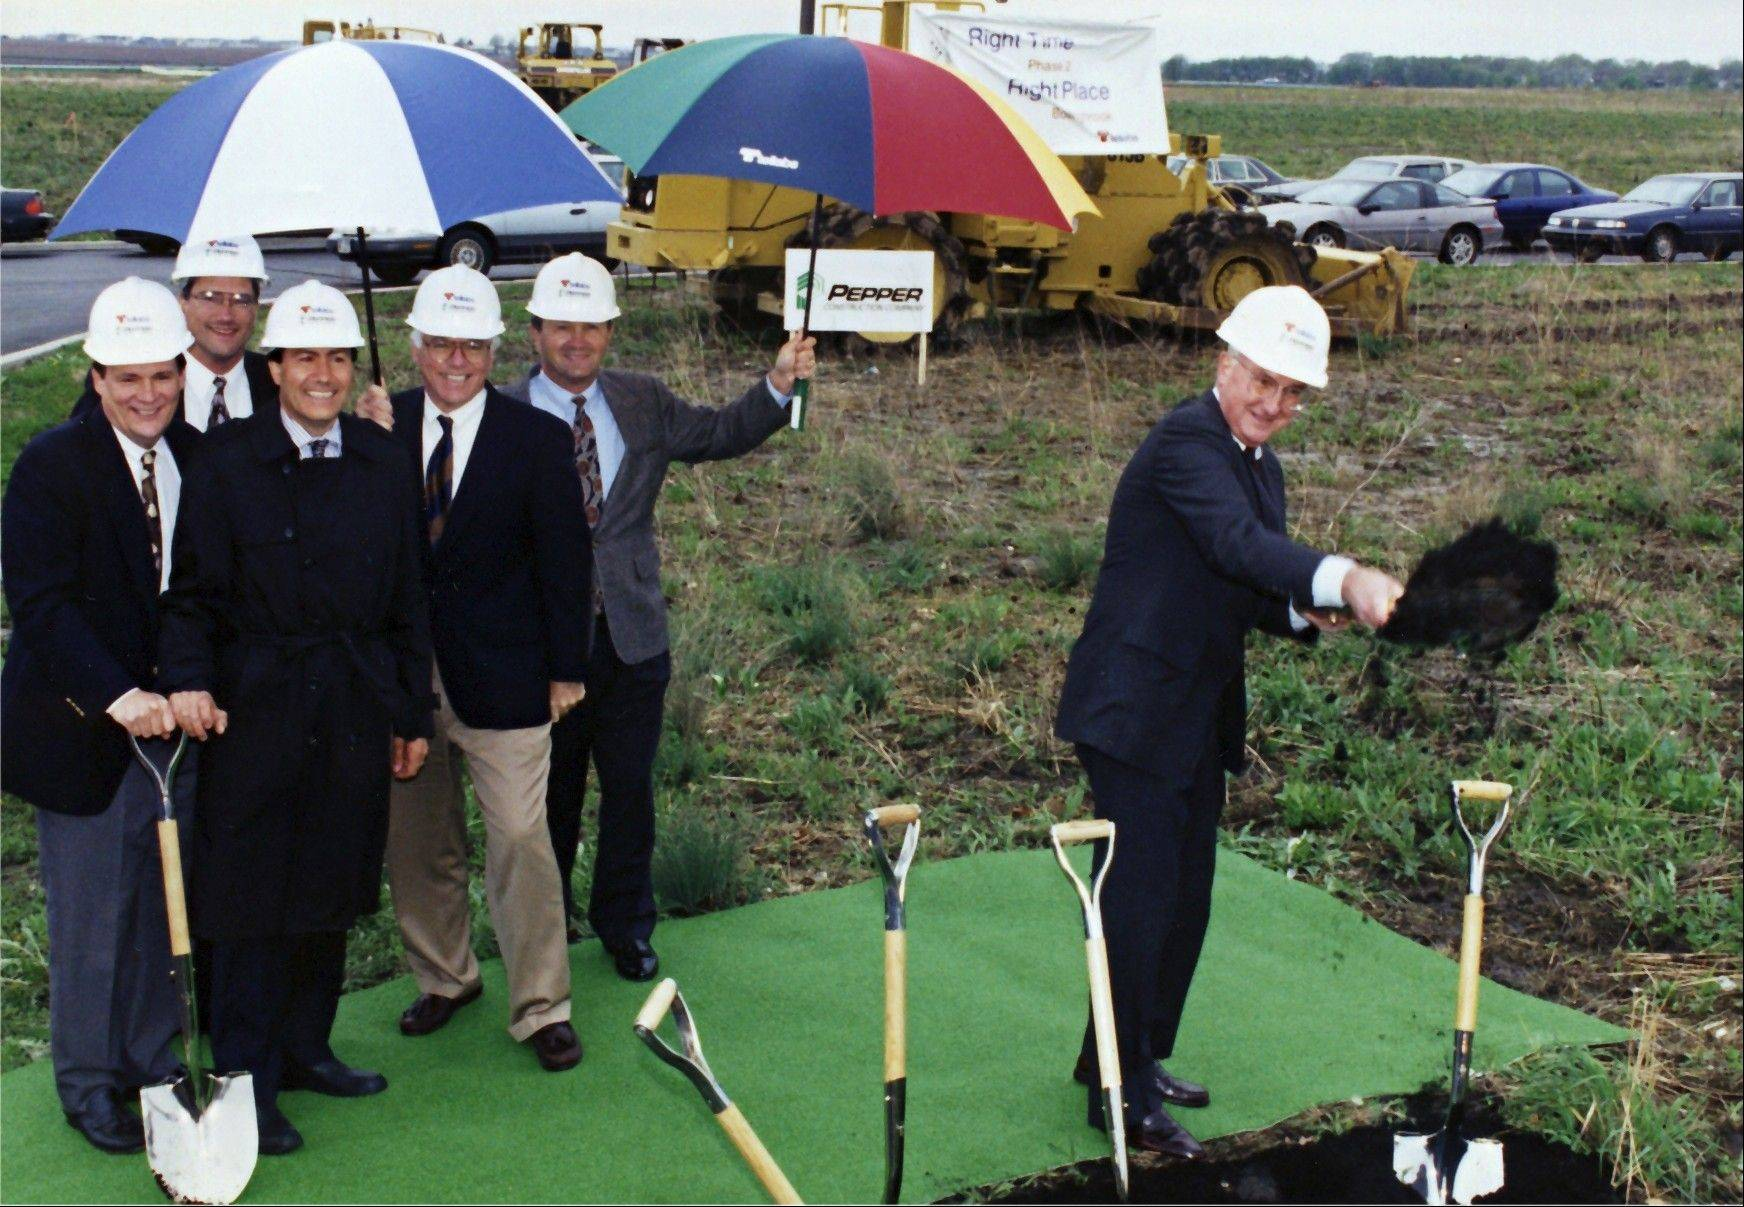 Mike Birck broke ground for Tellabs' headquarters in Naperville in April 2000.